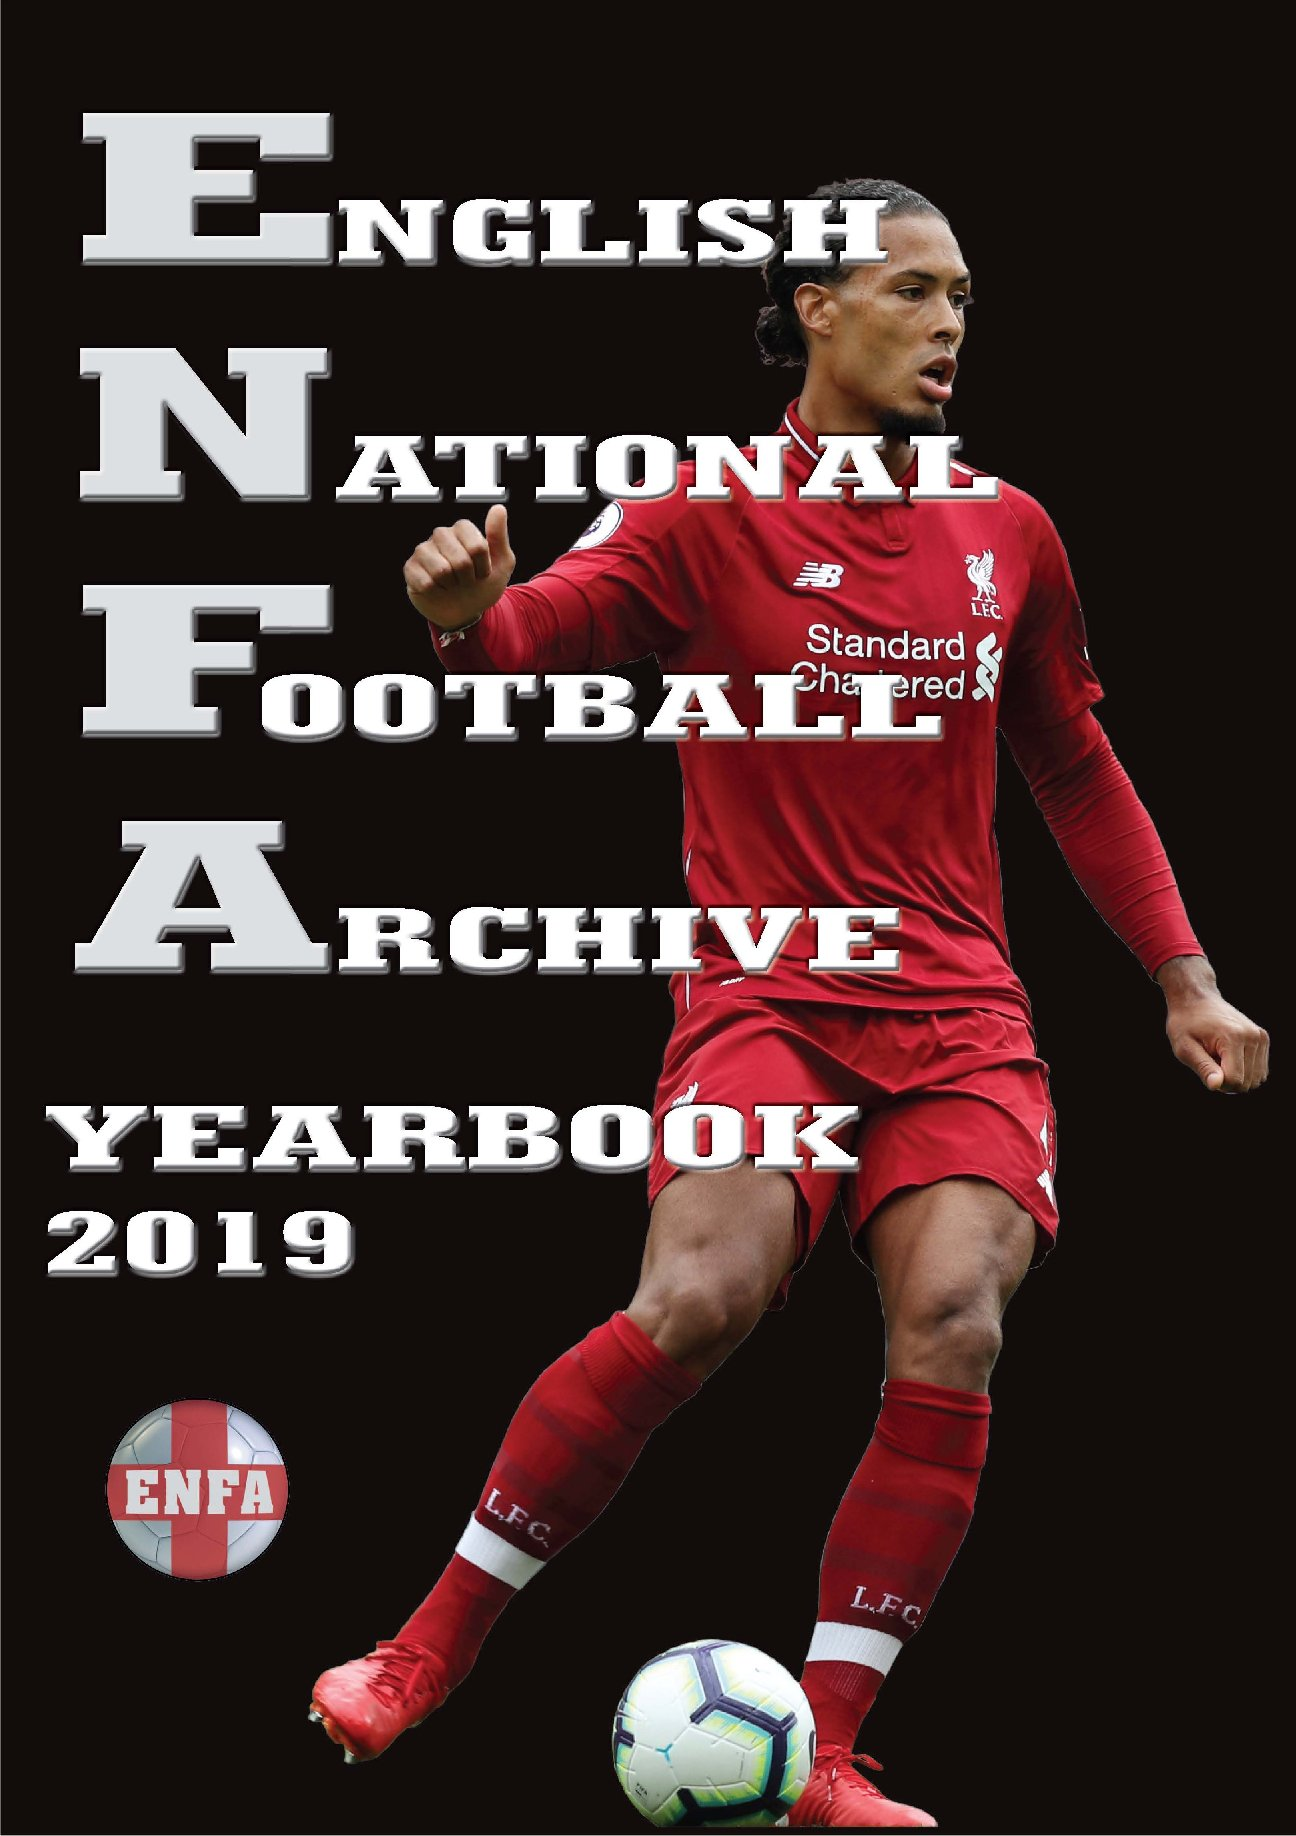 The English National Football Archive